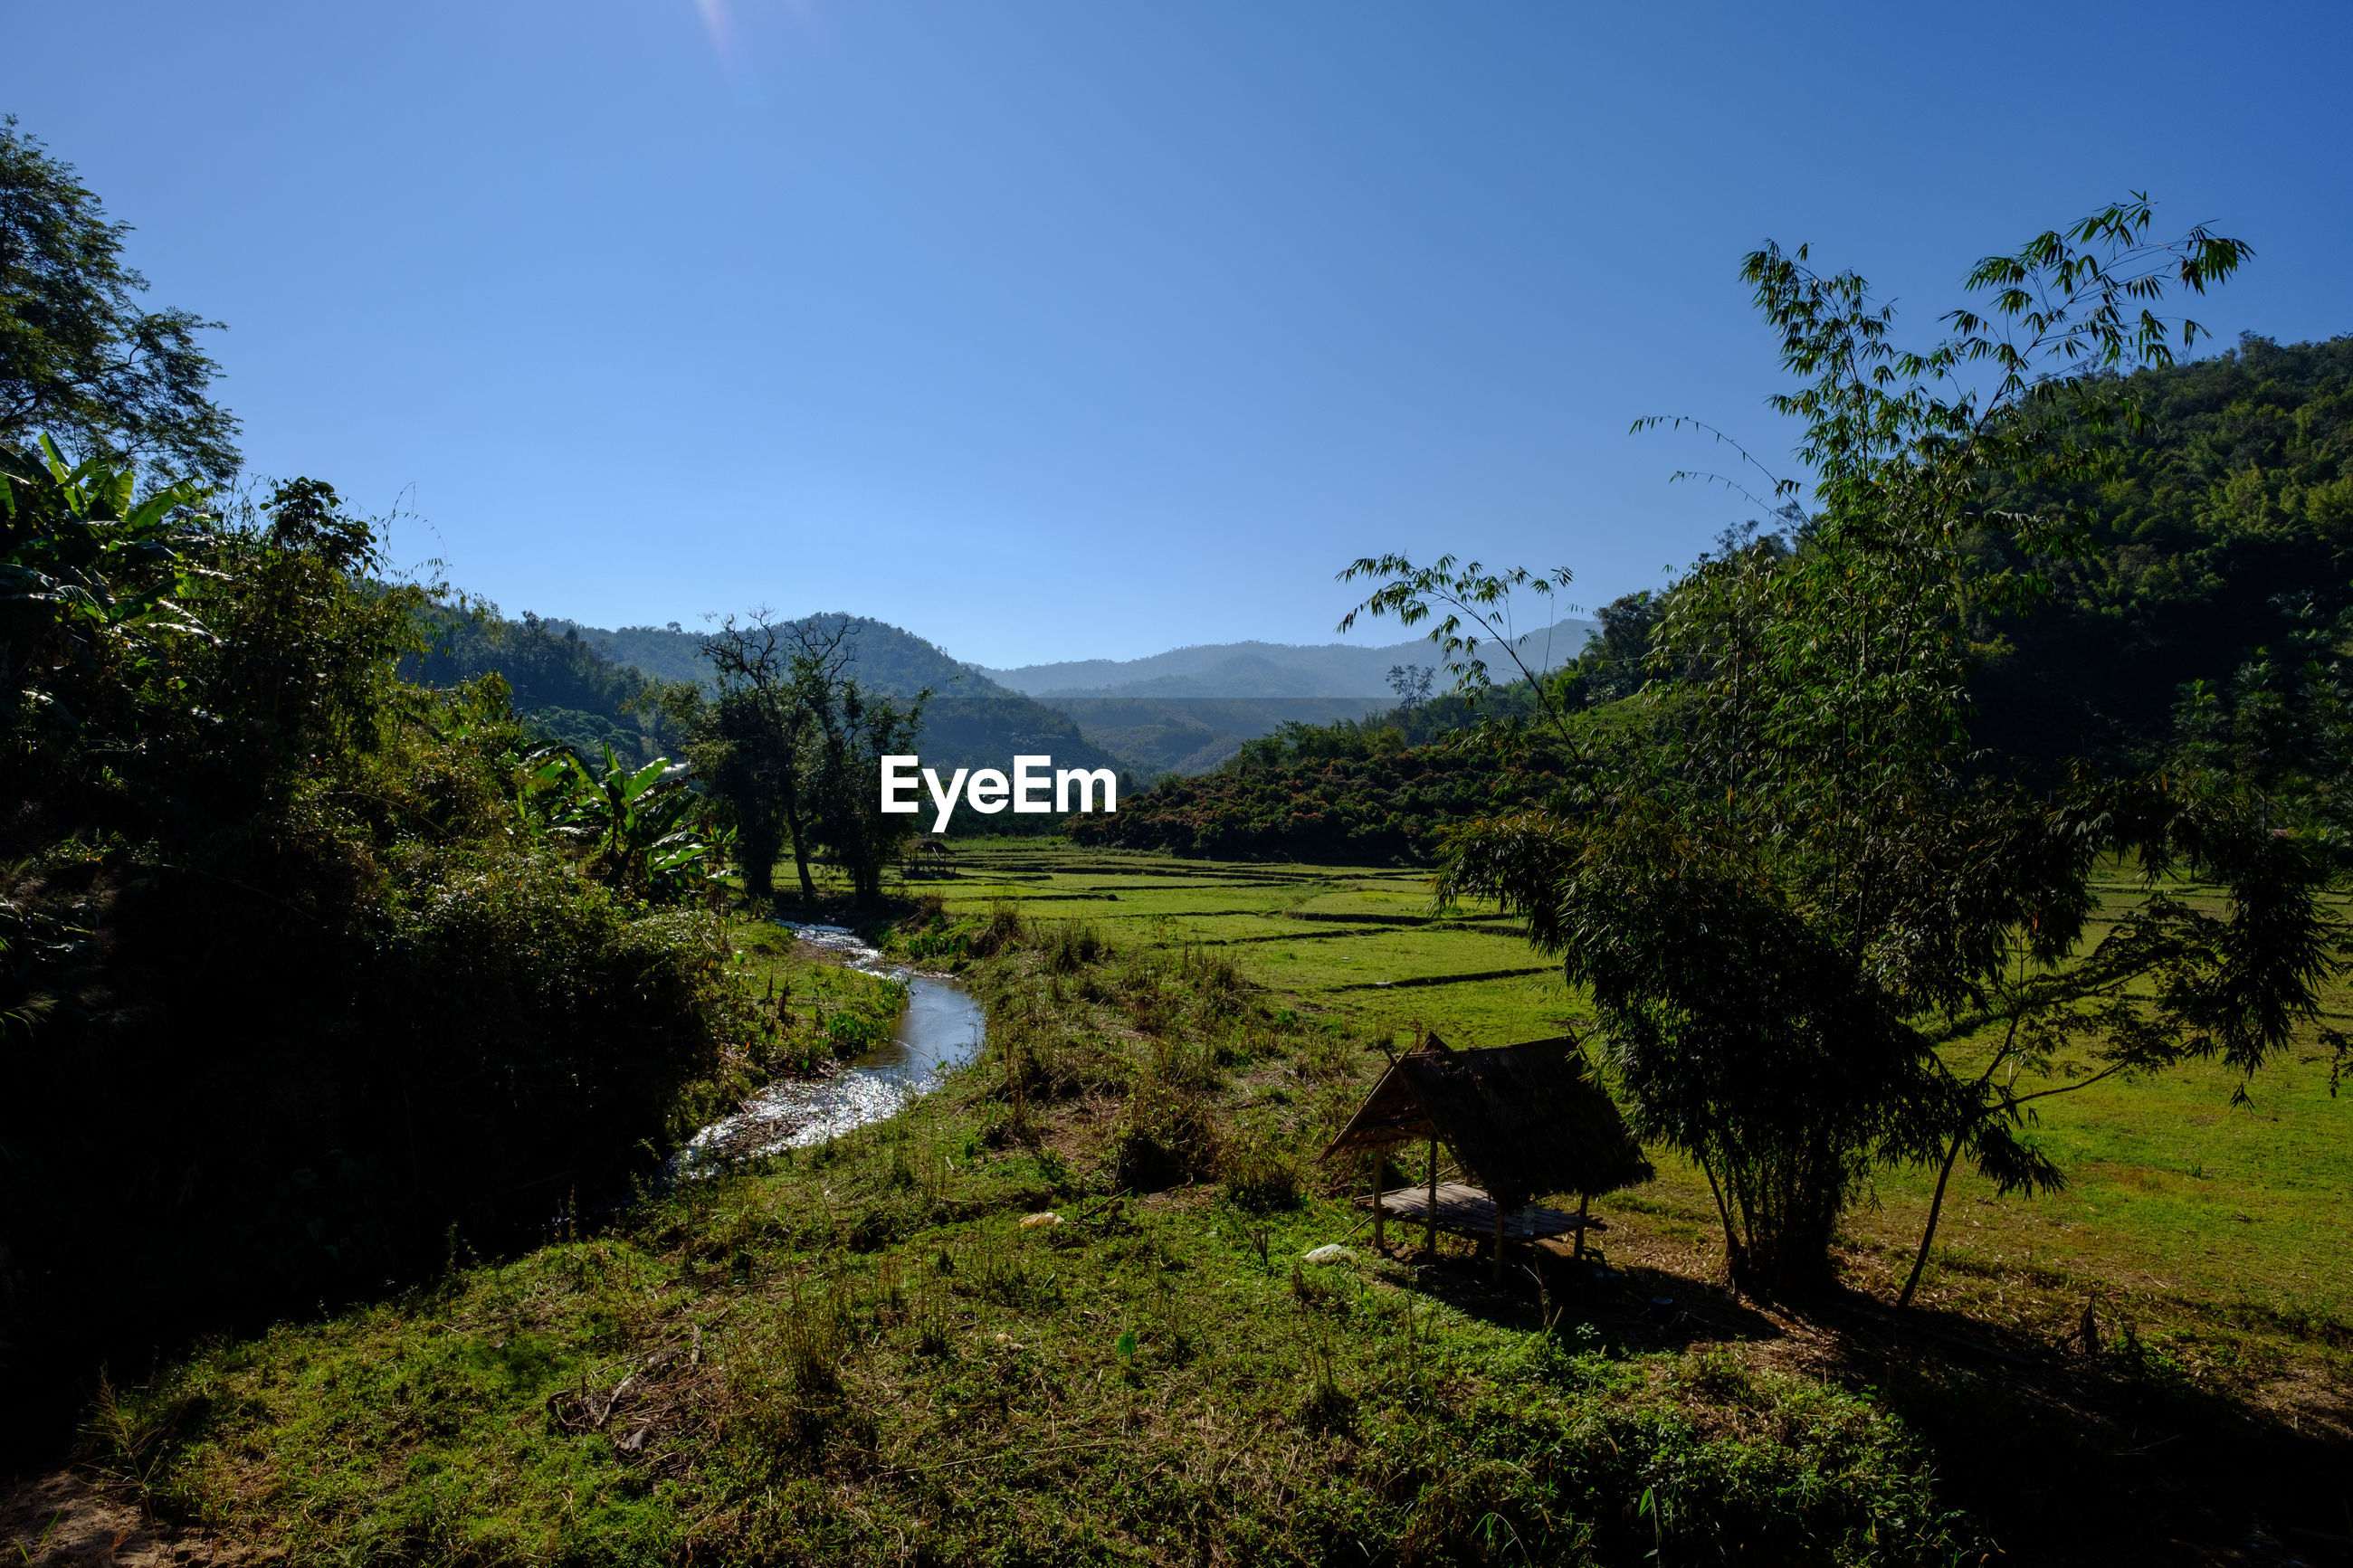 SCENIC VIEW OF GREEN LANDSCAPE AND TREES AGAINST SKY